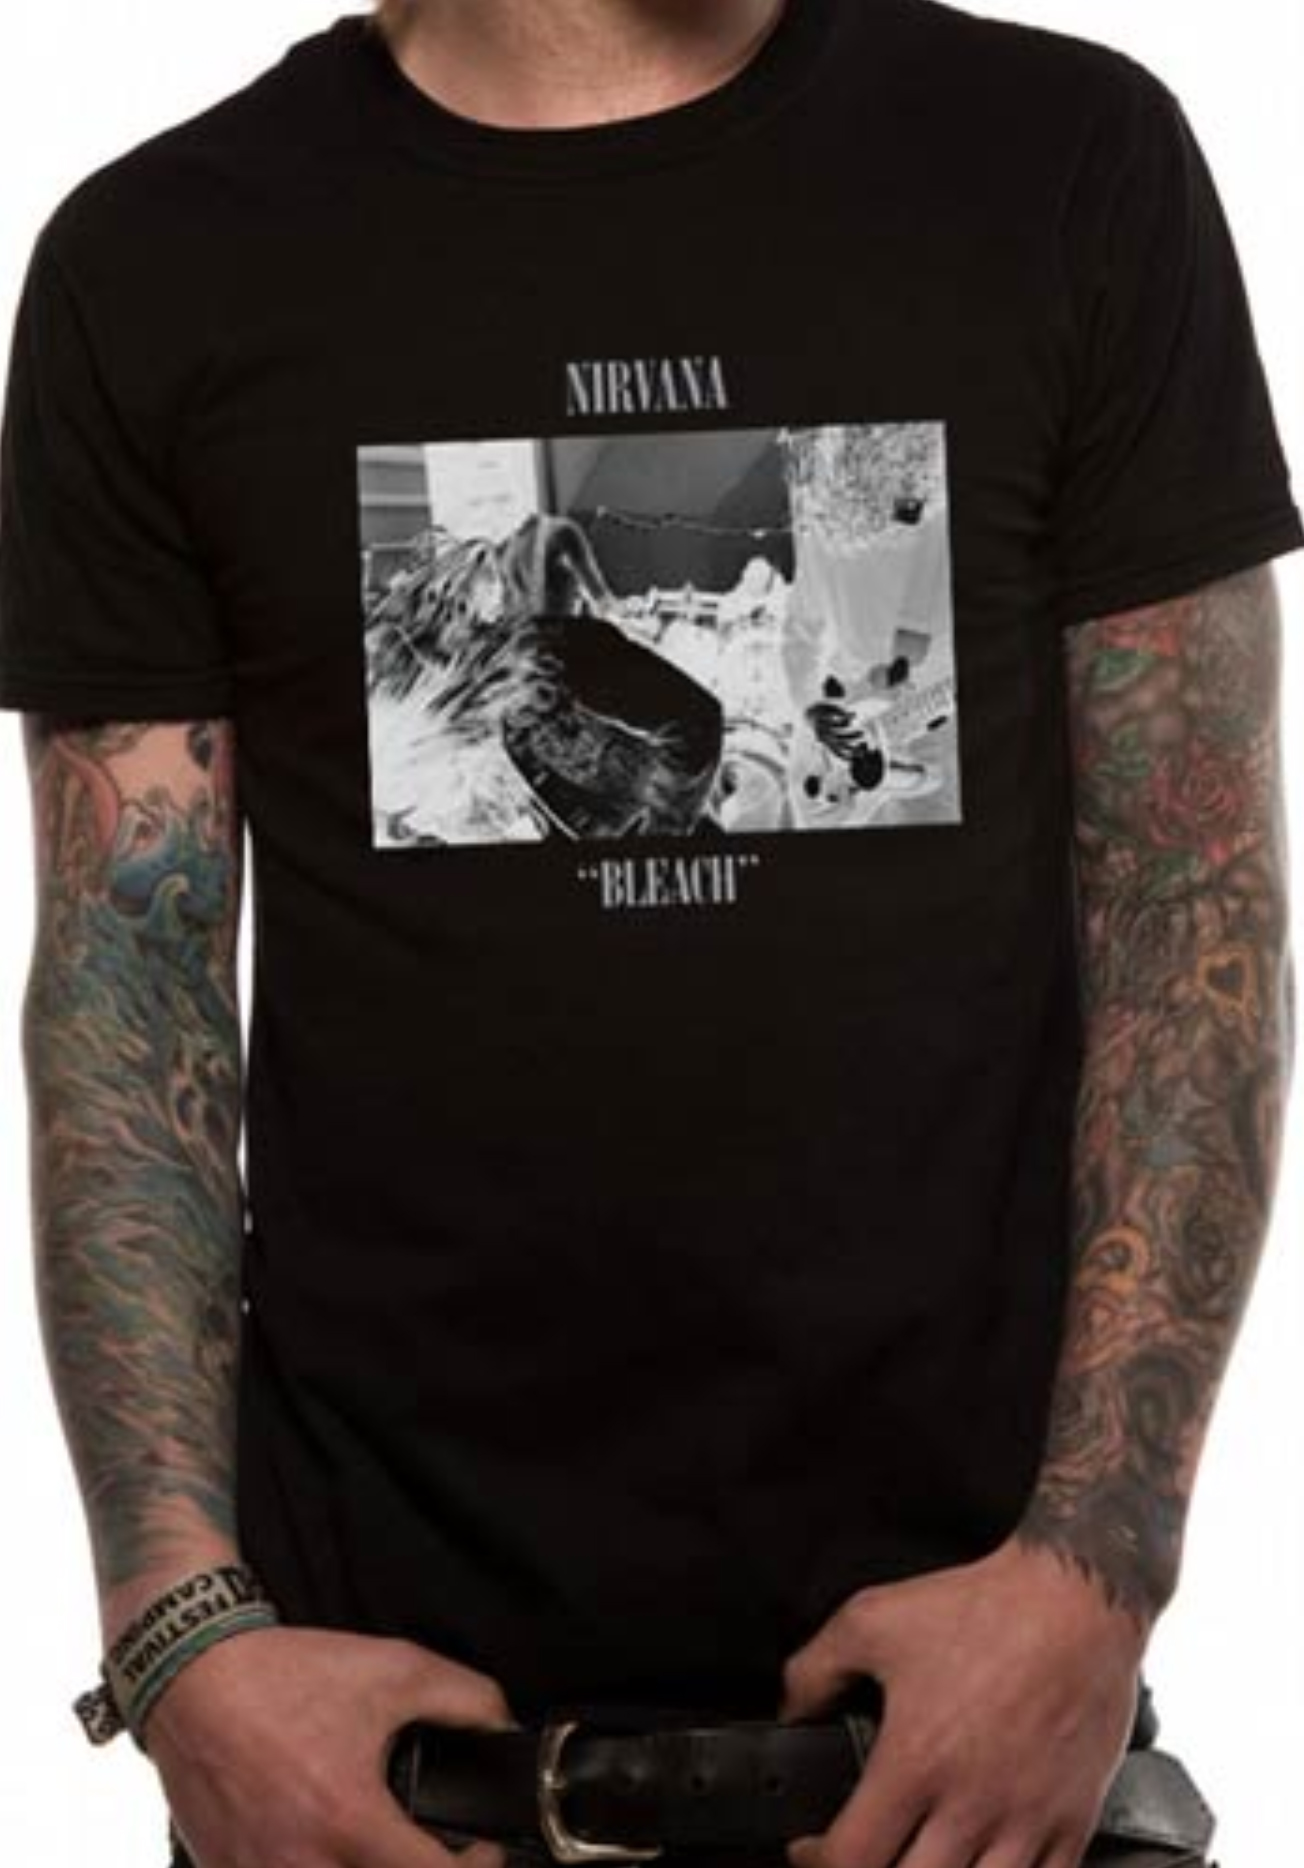 301fcf50d40 Details about Nirvana Bleach Album Kurt Cobain Rock Grunge Licensed Tee T- Shirt Men